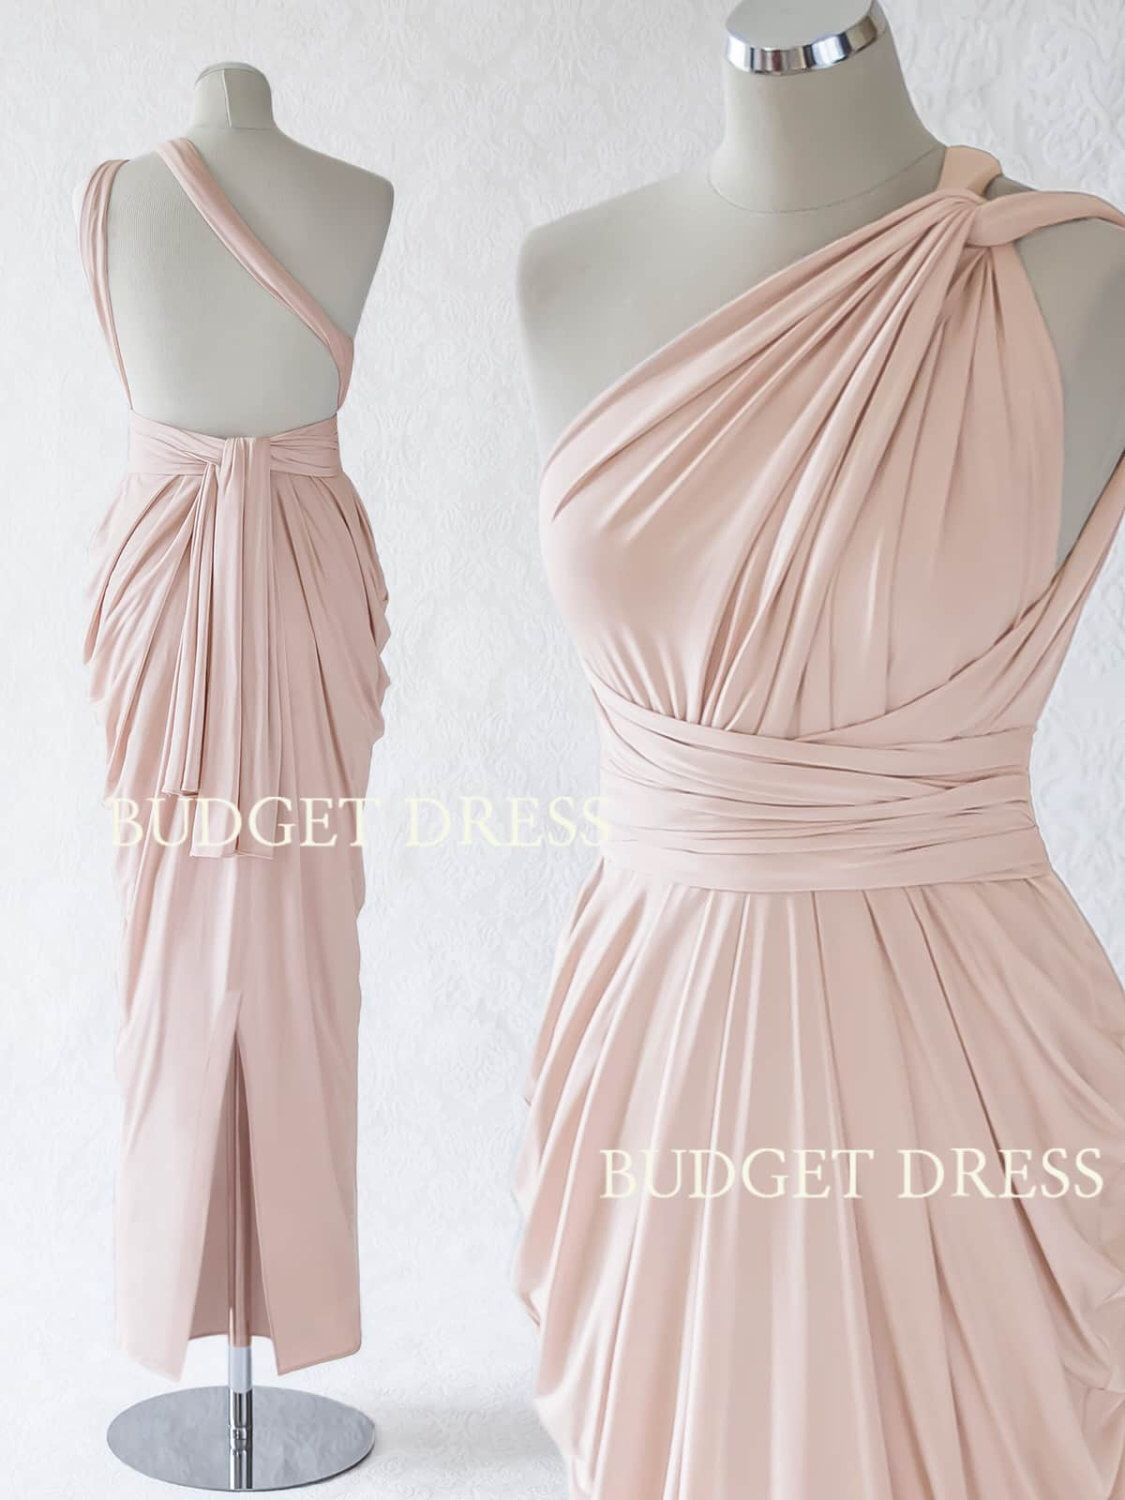 2017 new style nude blush multiform bridesmaids dress infinity 2017 new style nude blush multiform bridesmaids dress infinity greek prom dresses engagement party ombrellifo Image collections